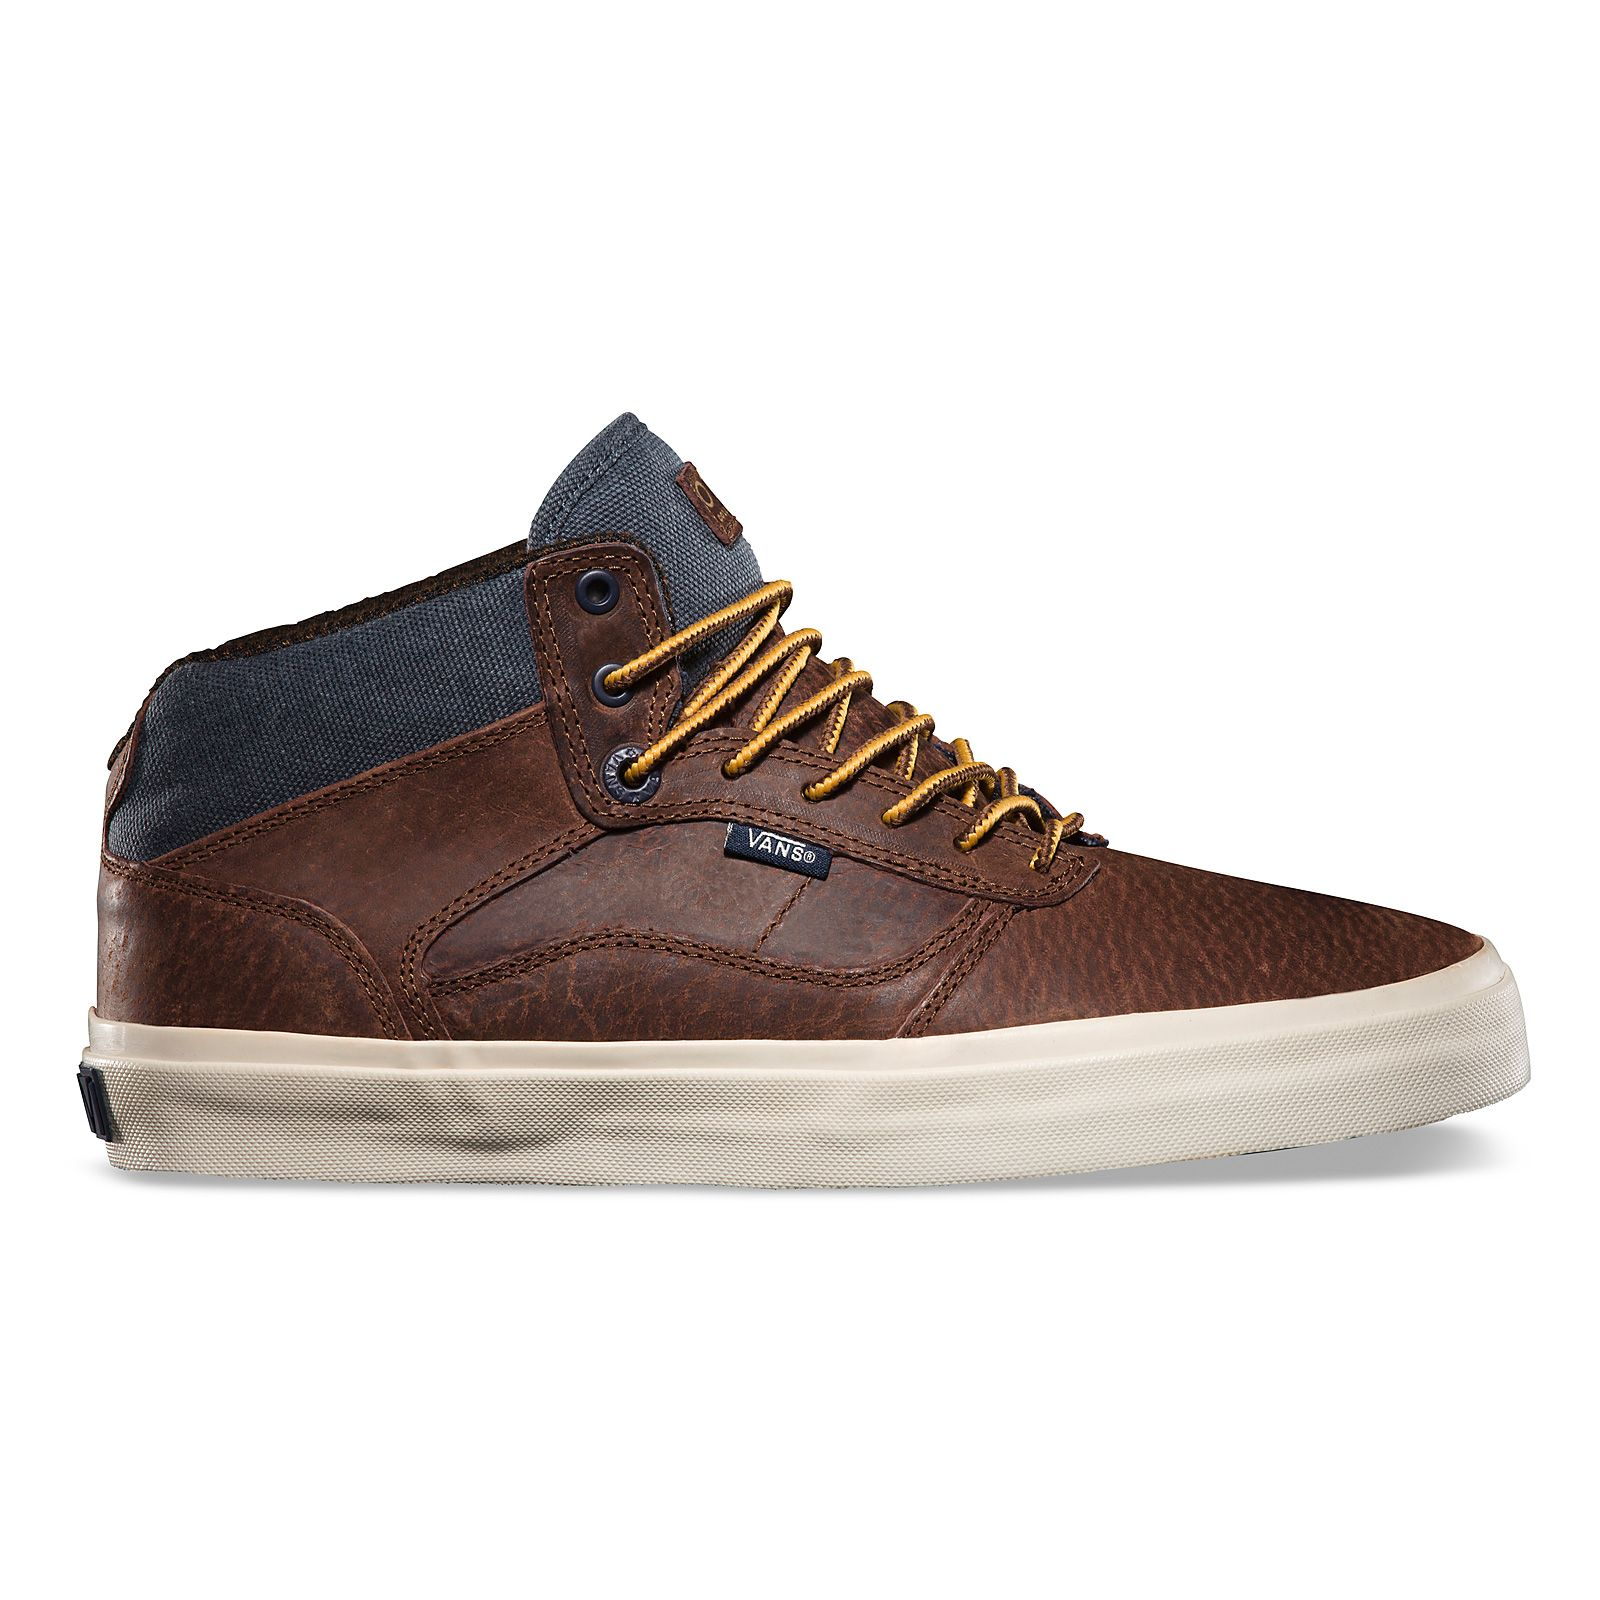 Find mens black shoes at Vans. Shop for mens black shoes, popular shoe  styles, clothing, accessories, and much more!